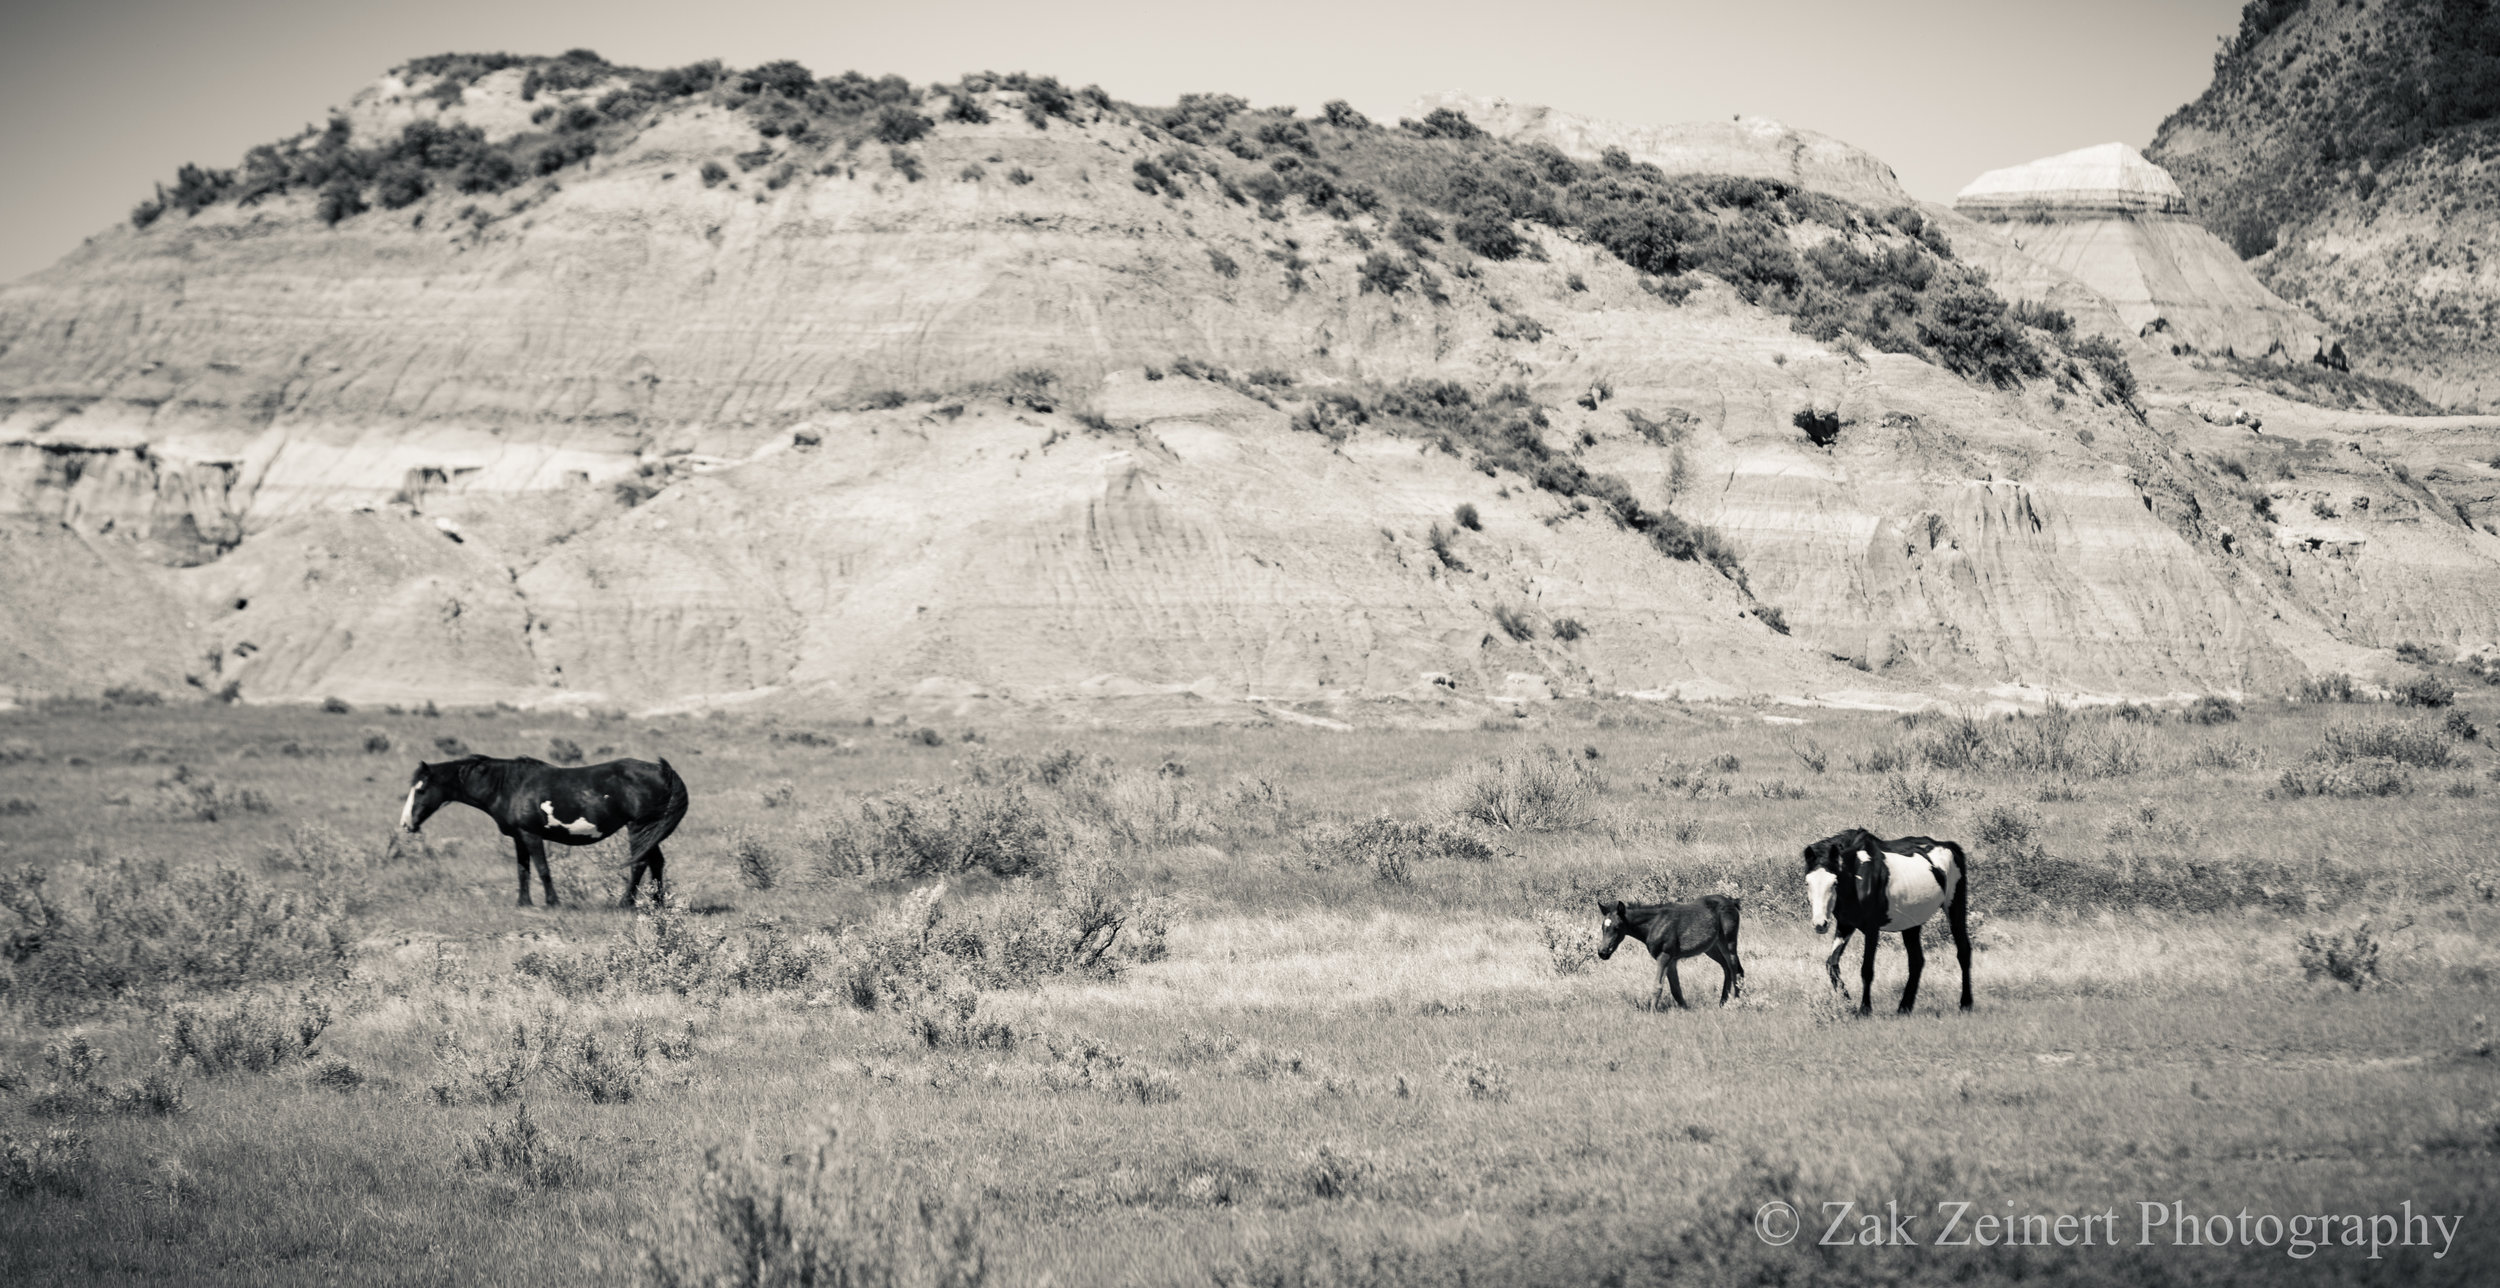 Two wild horses and a young foal graze upon the Badlands near the Lower Talkington Trail